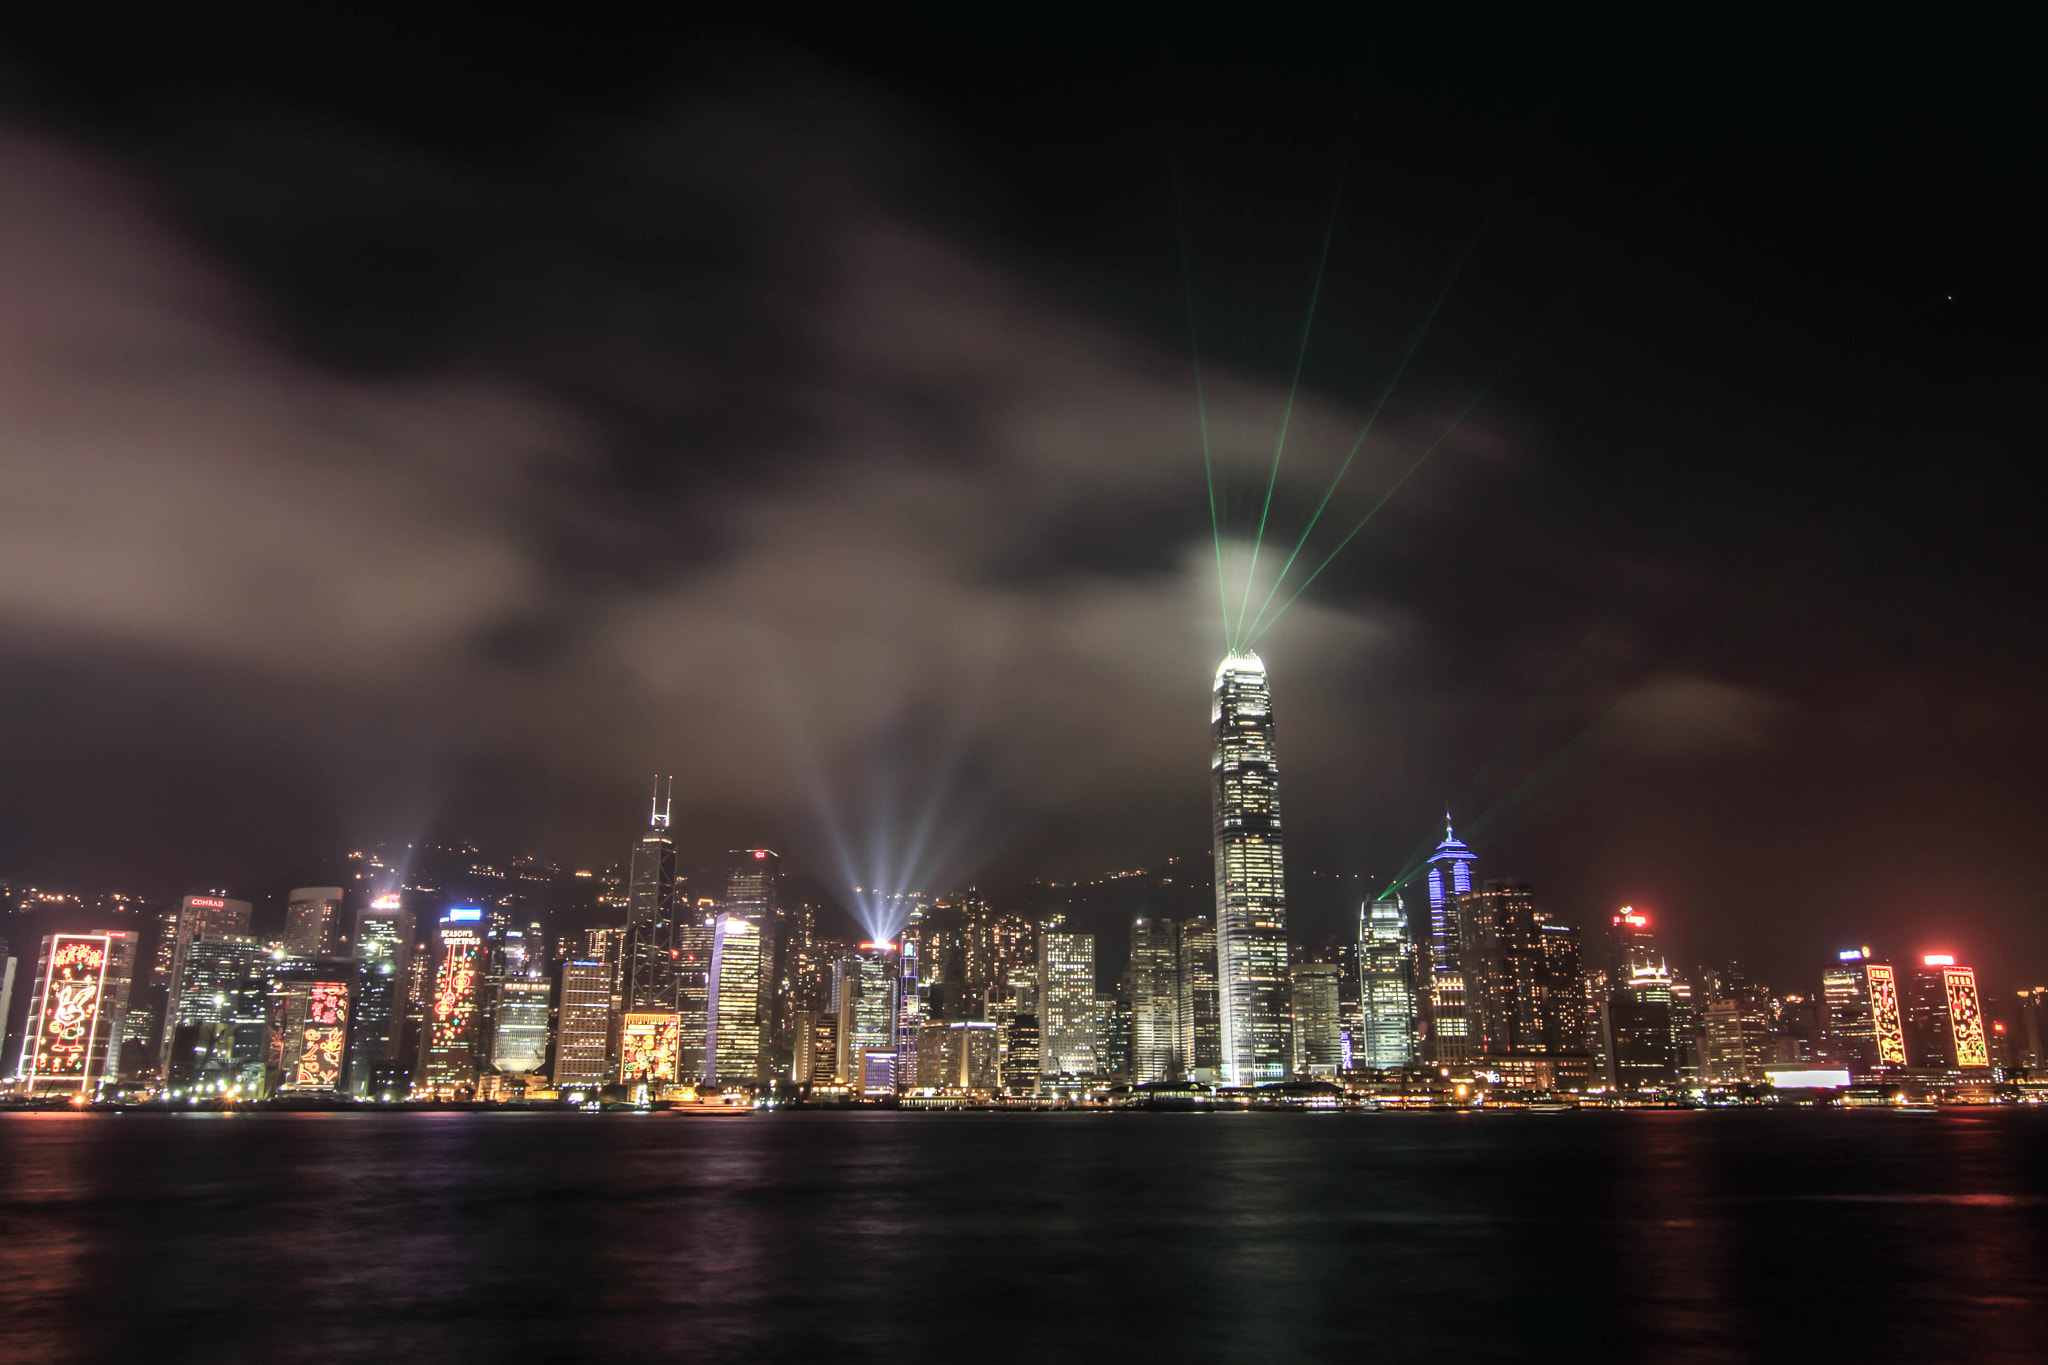 Photograph Hong Kong - Night View by Jae Hyuk Ko on 500px